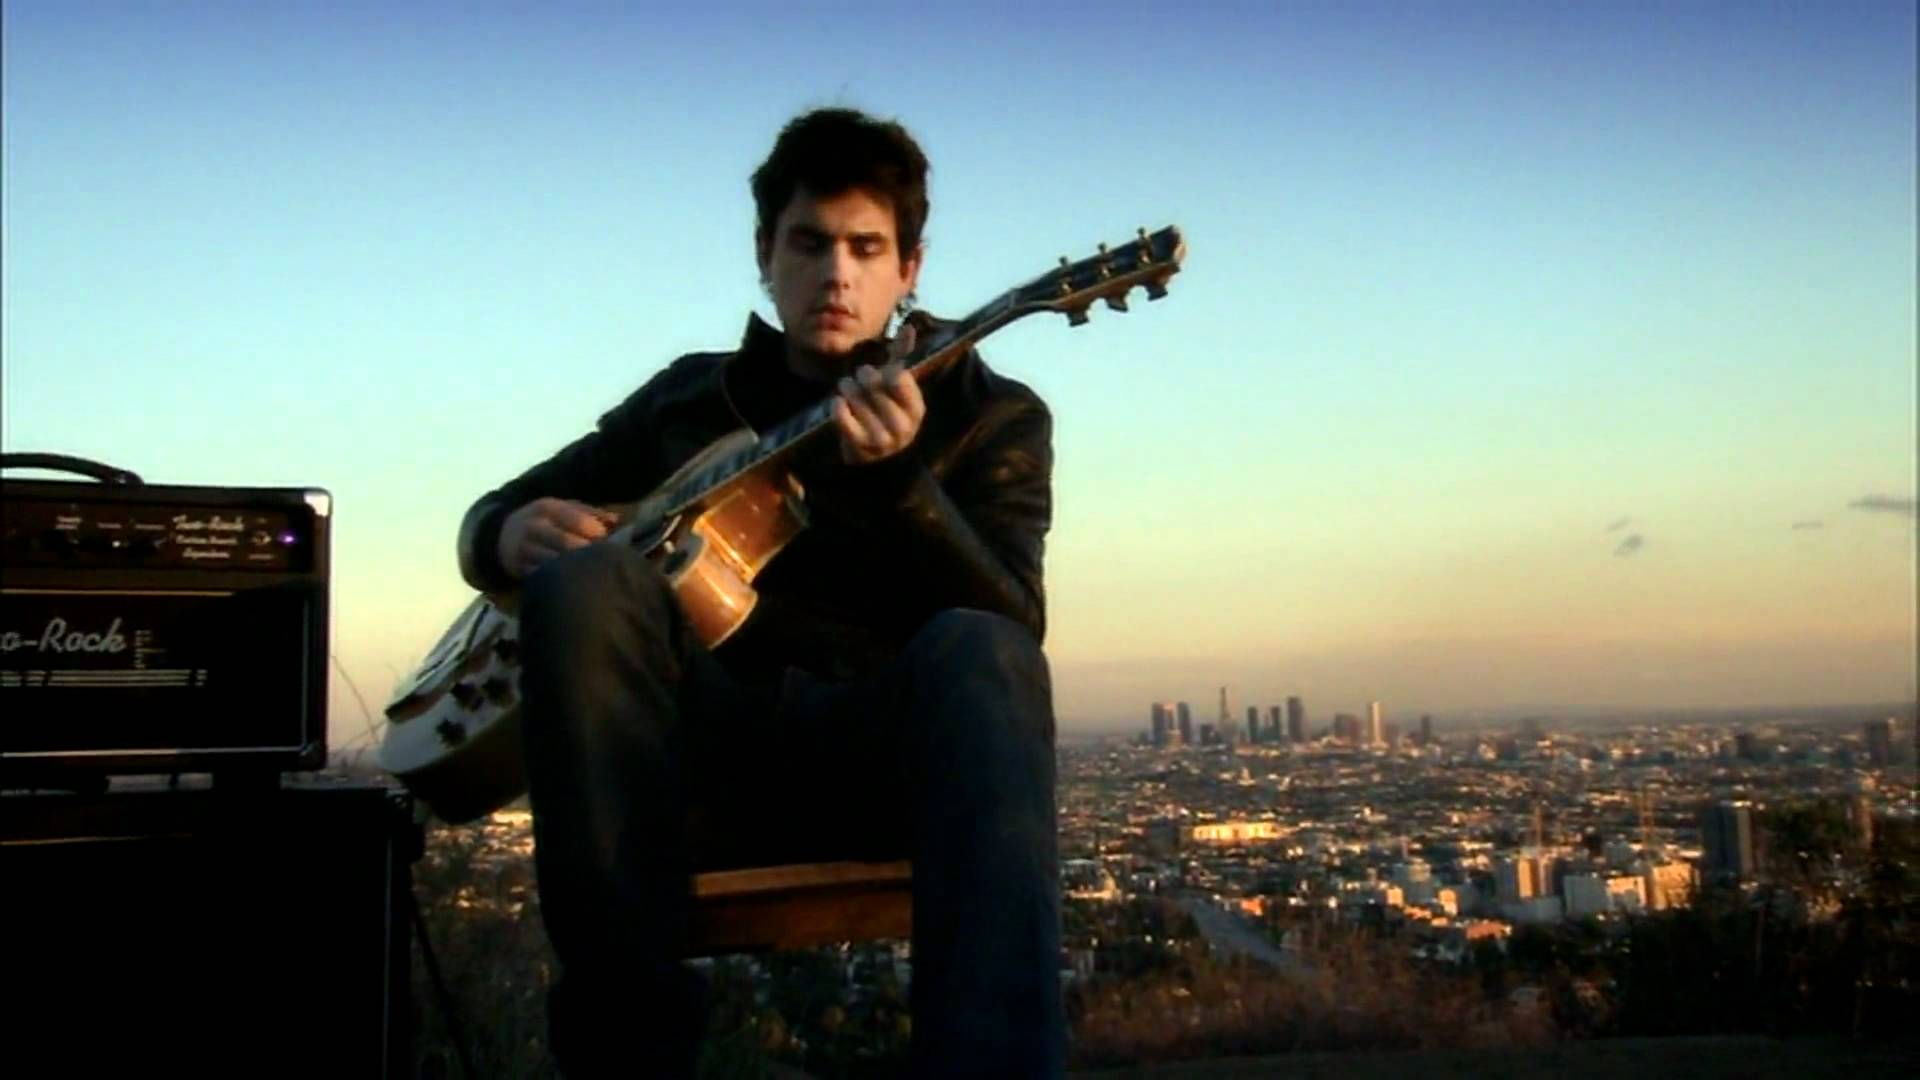 Slow Dancing on Mulholland Drive - John Mayer [HD]